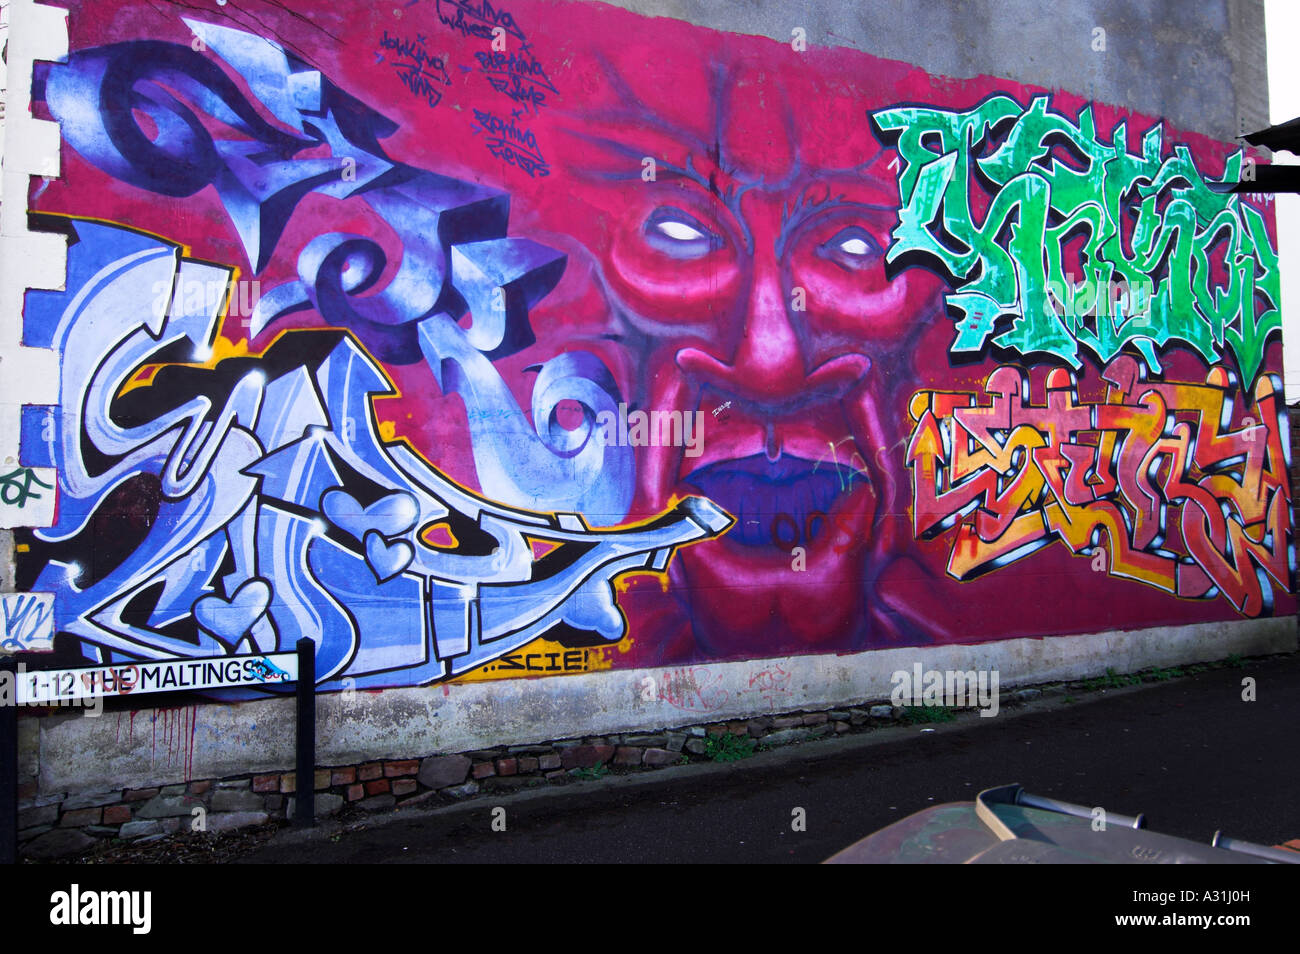 Graffiti wall art montpelier bristol uk